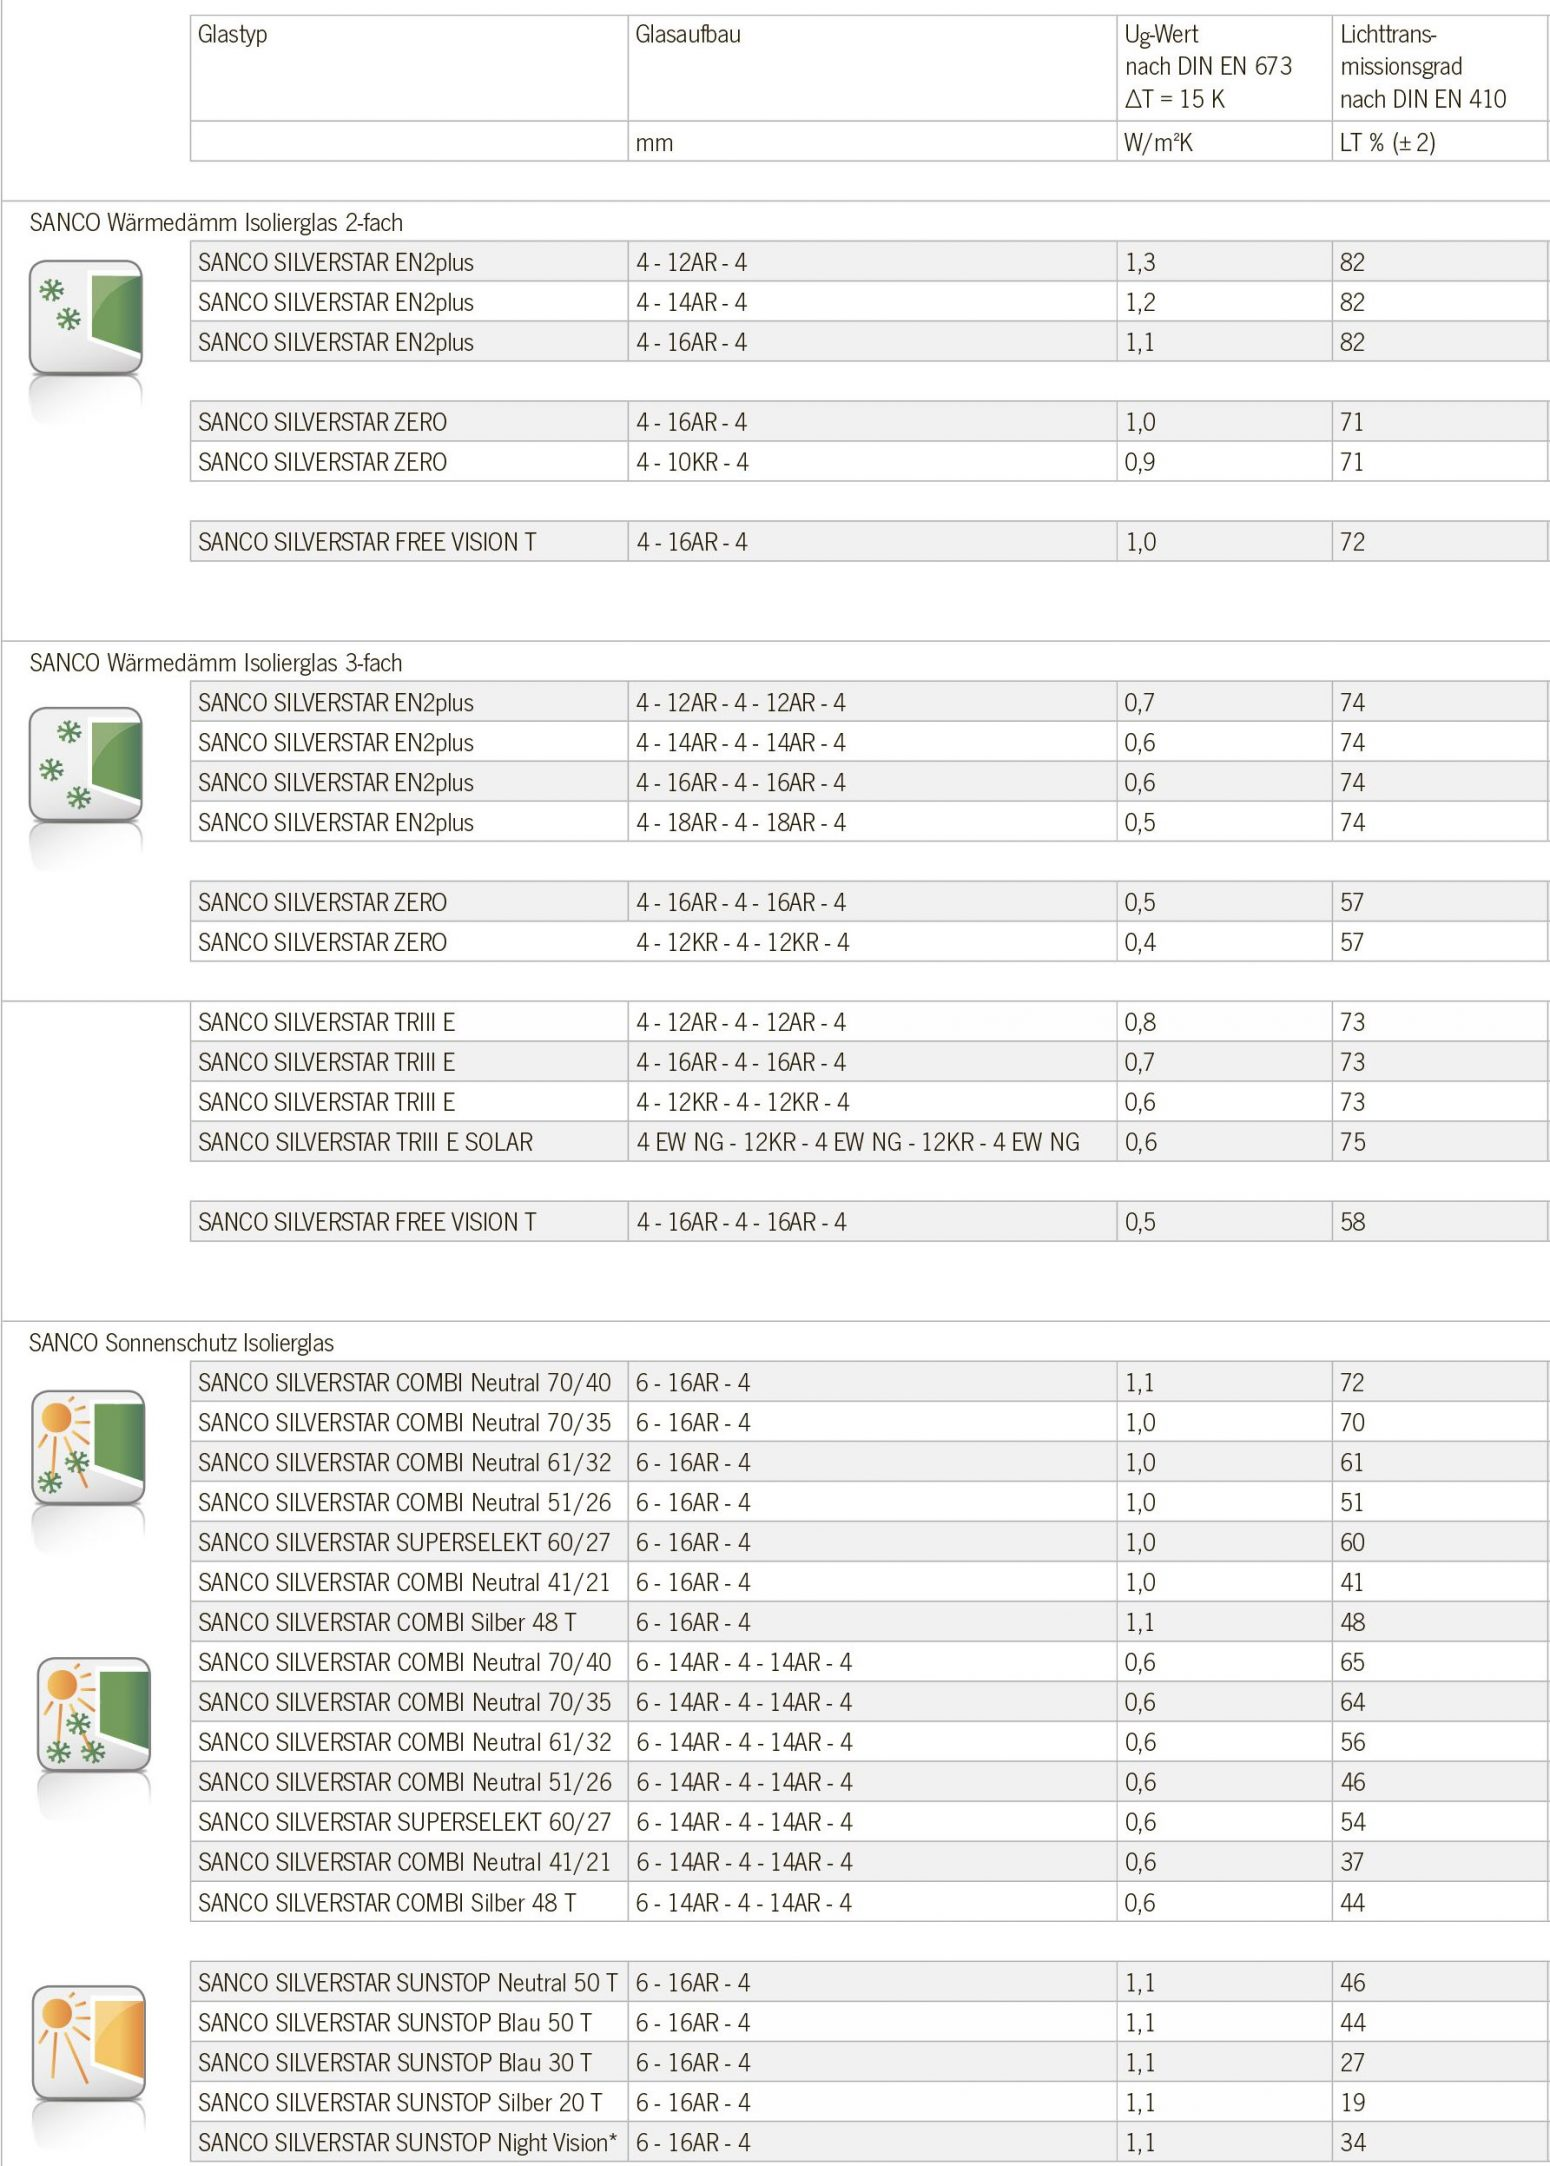 Table of calculations of heat gain